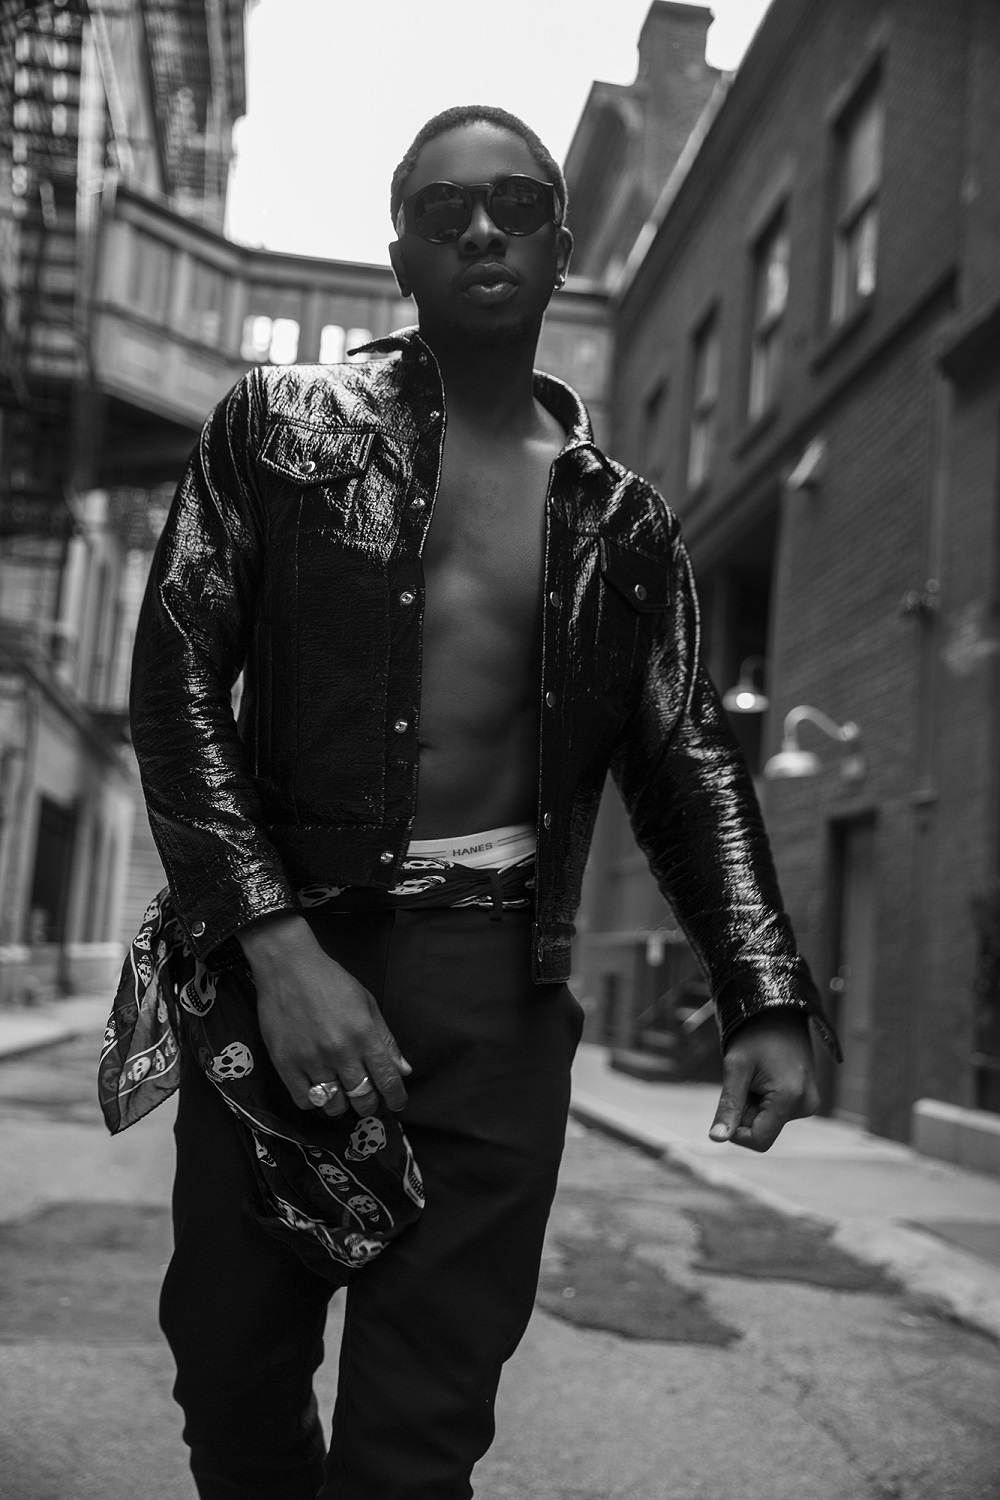 This Feature By Hunger Magazine Proves Runtown Is The Leader Of The New School